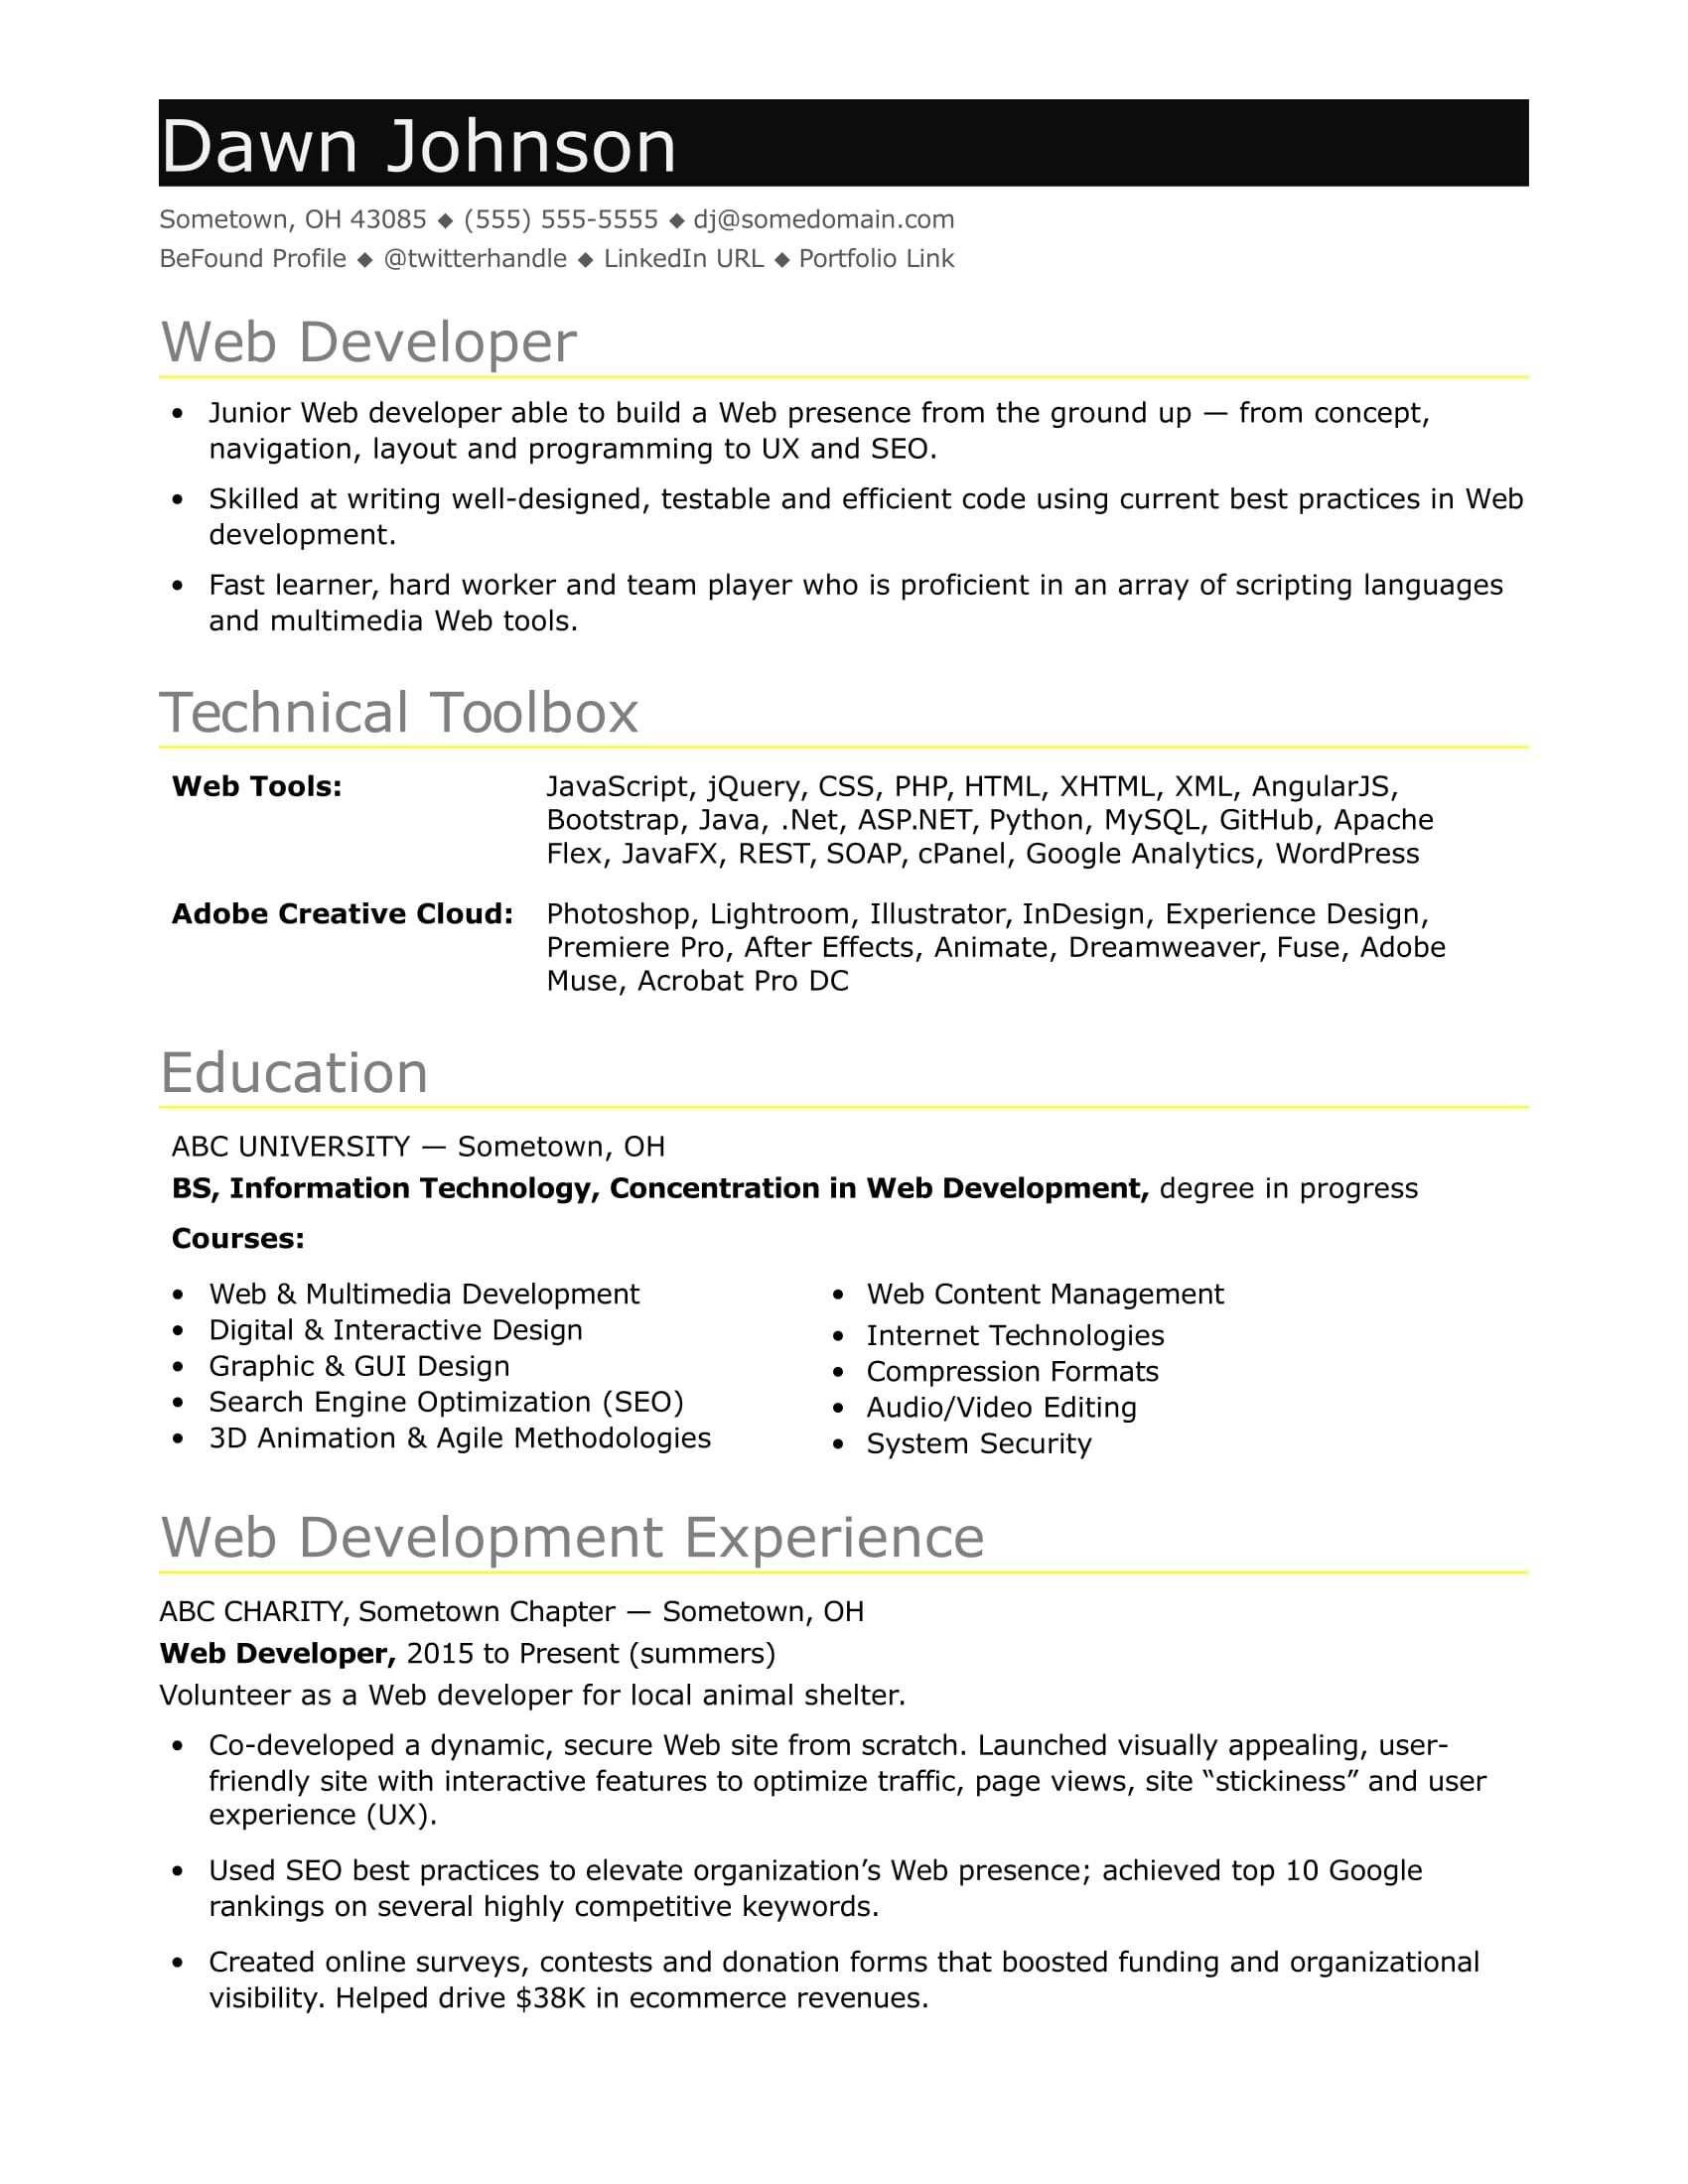 sample resume for an entry level it developer - Angularjs Developer Resume